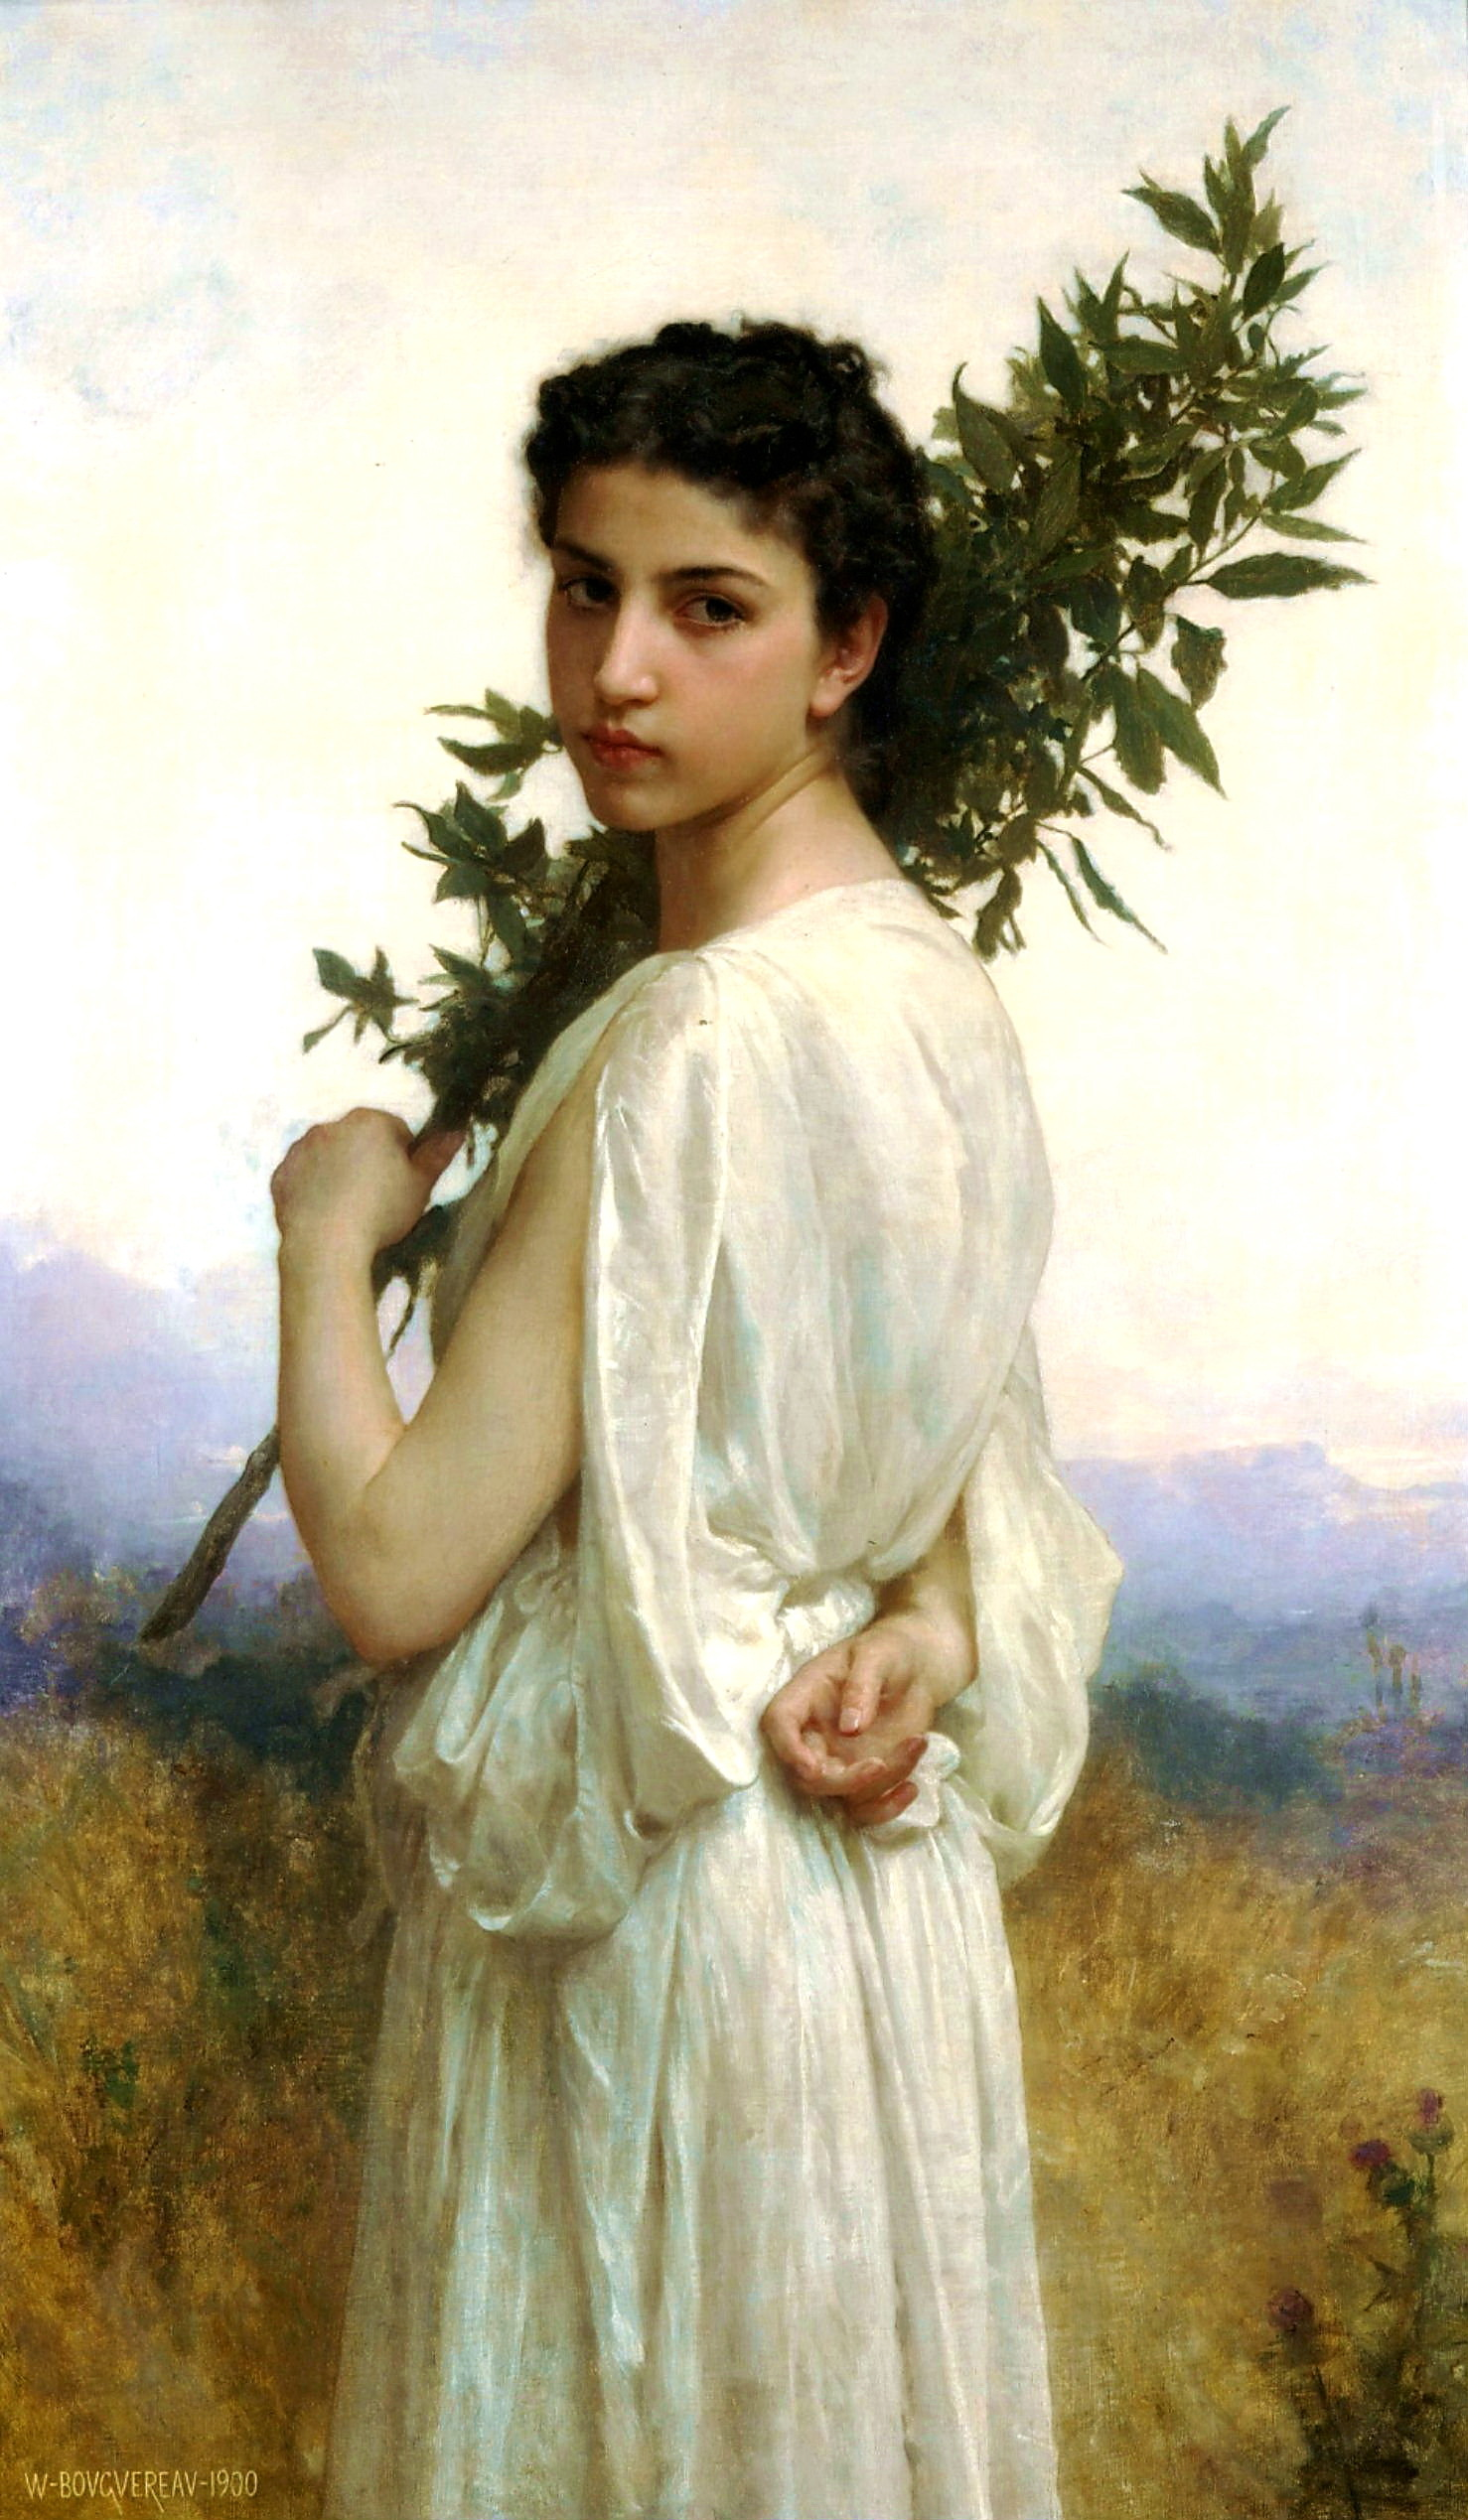 William-Adolphe Bouguereau 1825-1905 - Laurel Branch (Lorbeerzweig) 1900